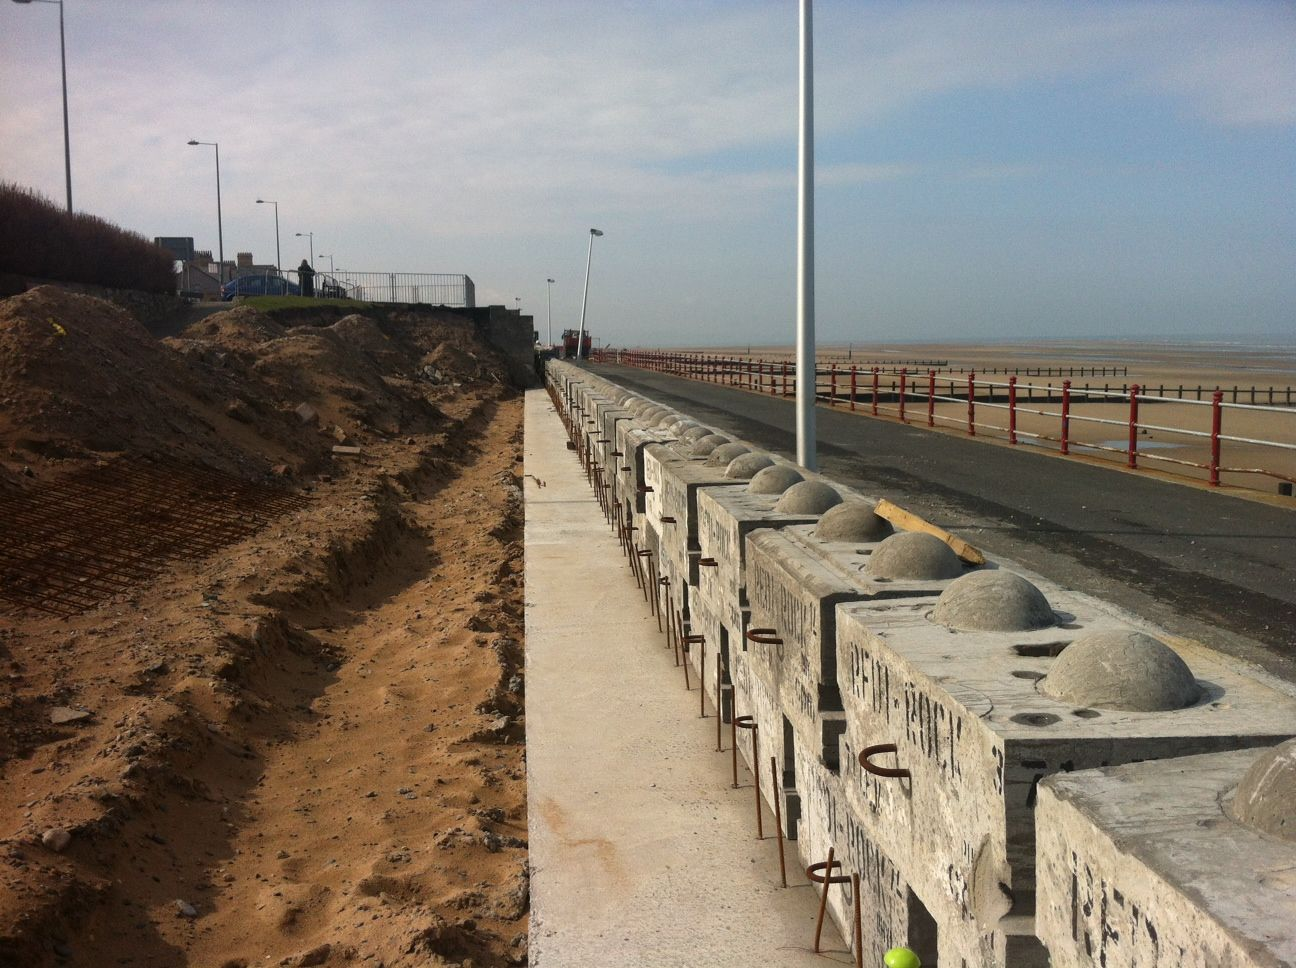 Precast Concrete Blocks Manufactured By Cpm Are Dry Laid Enabling For Quick And Fast Installation Precast Concrete Flood Protection Free Standing Wall